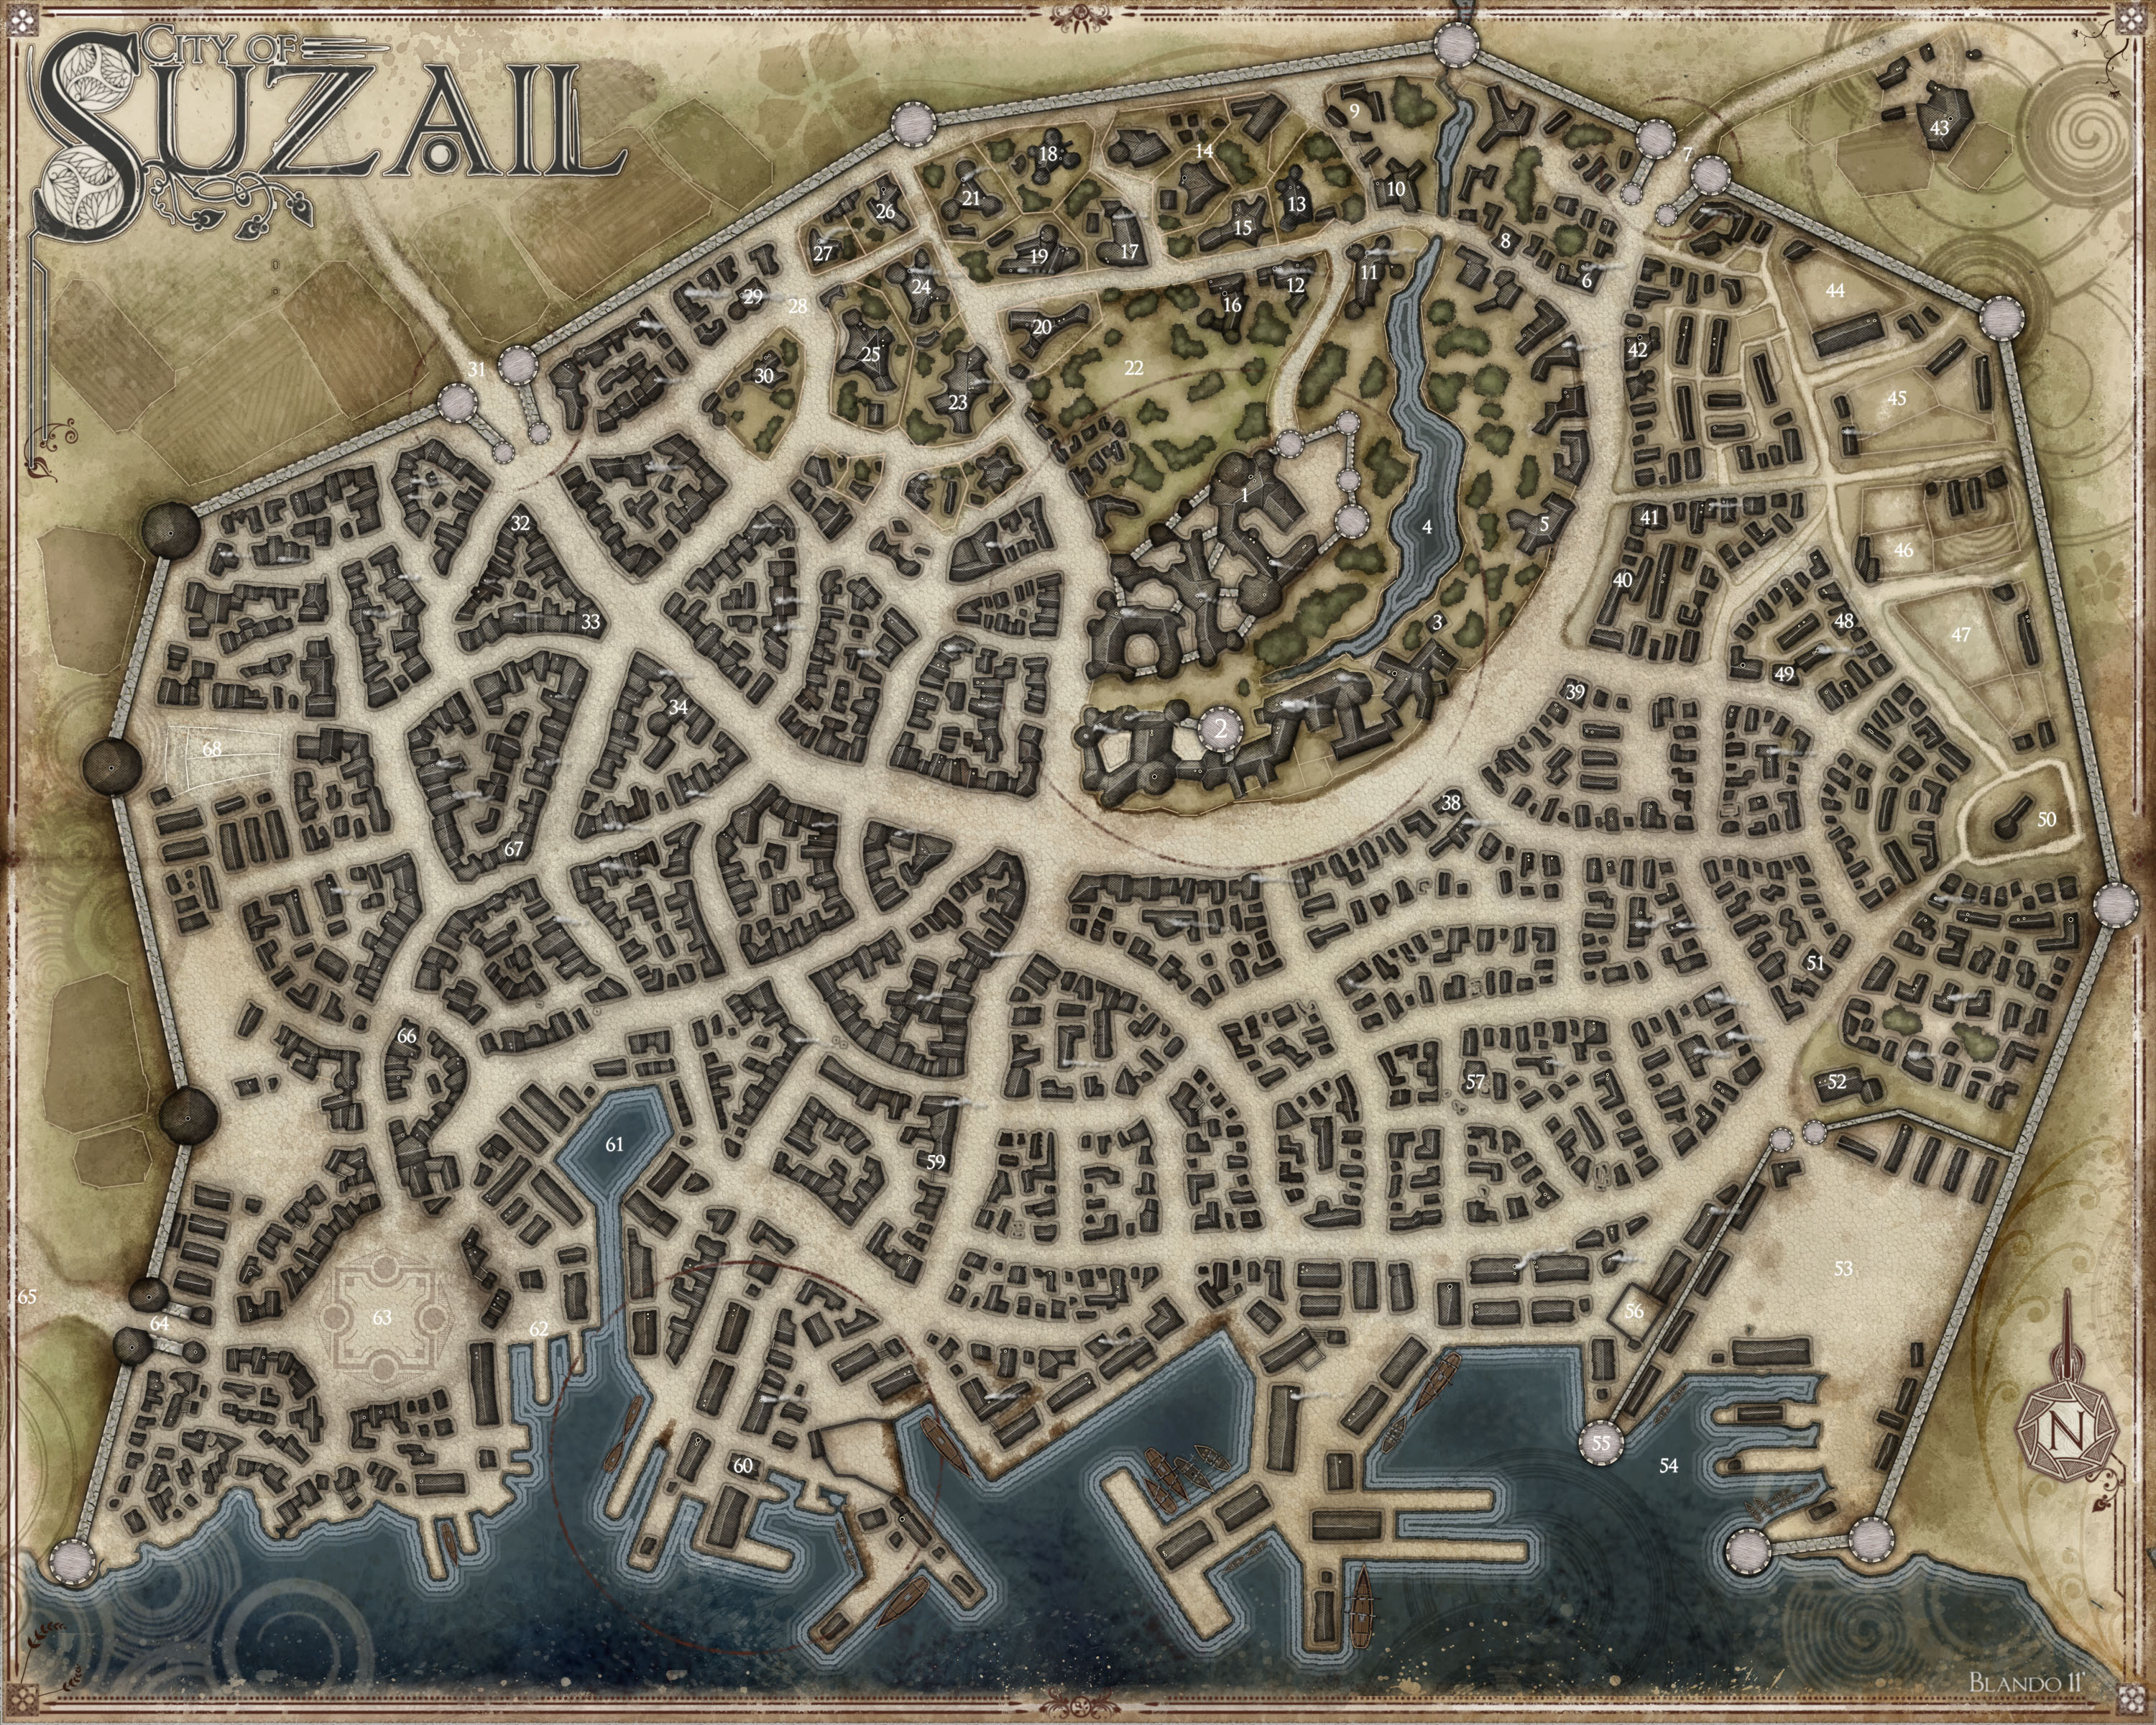 Suzail | Forgotten Realms Wiki | FANDOM powered by Wikia